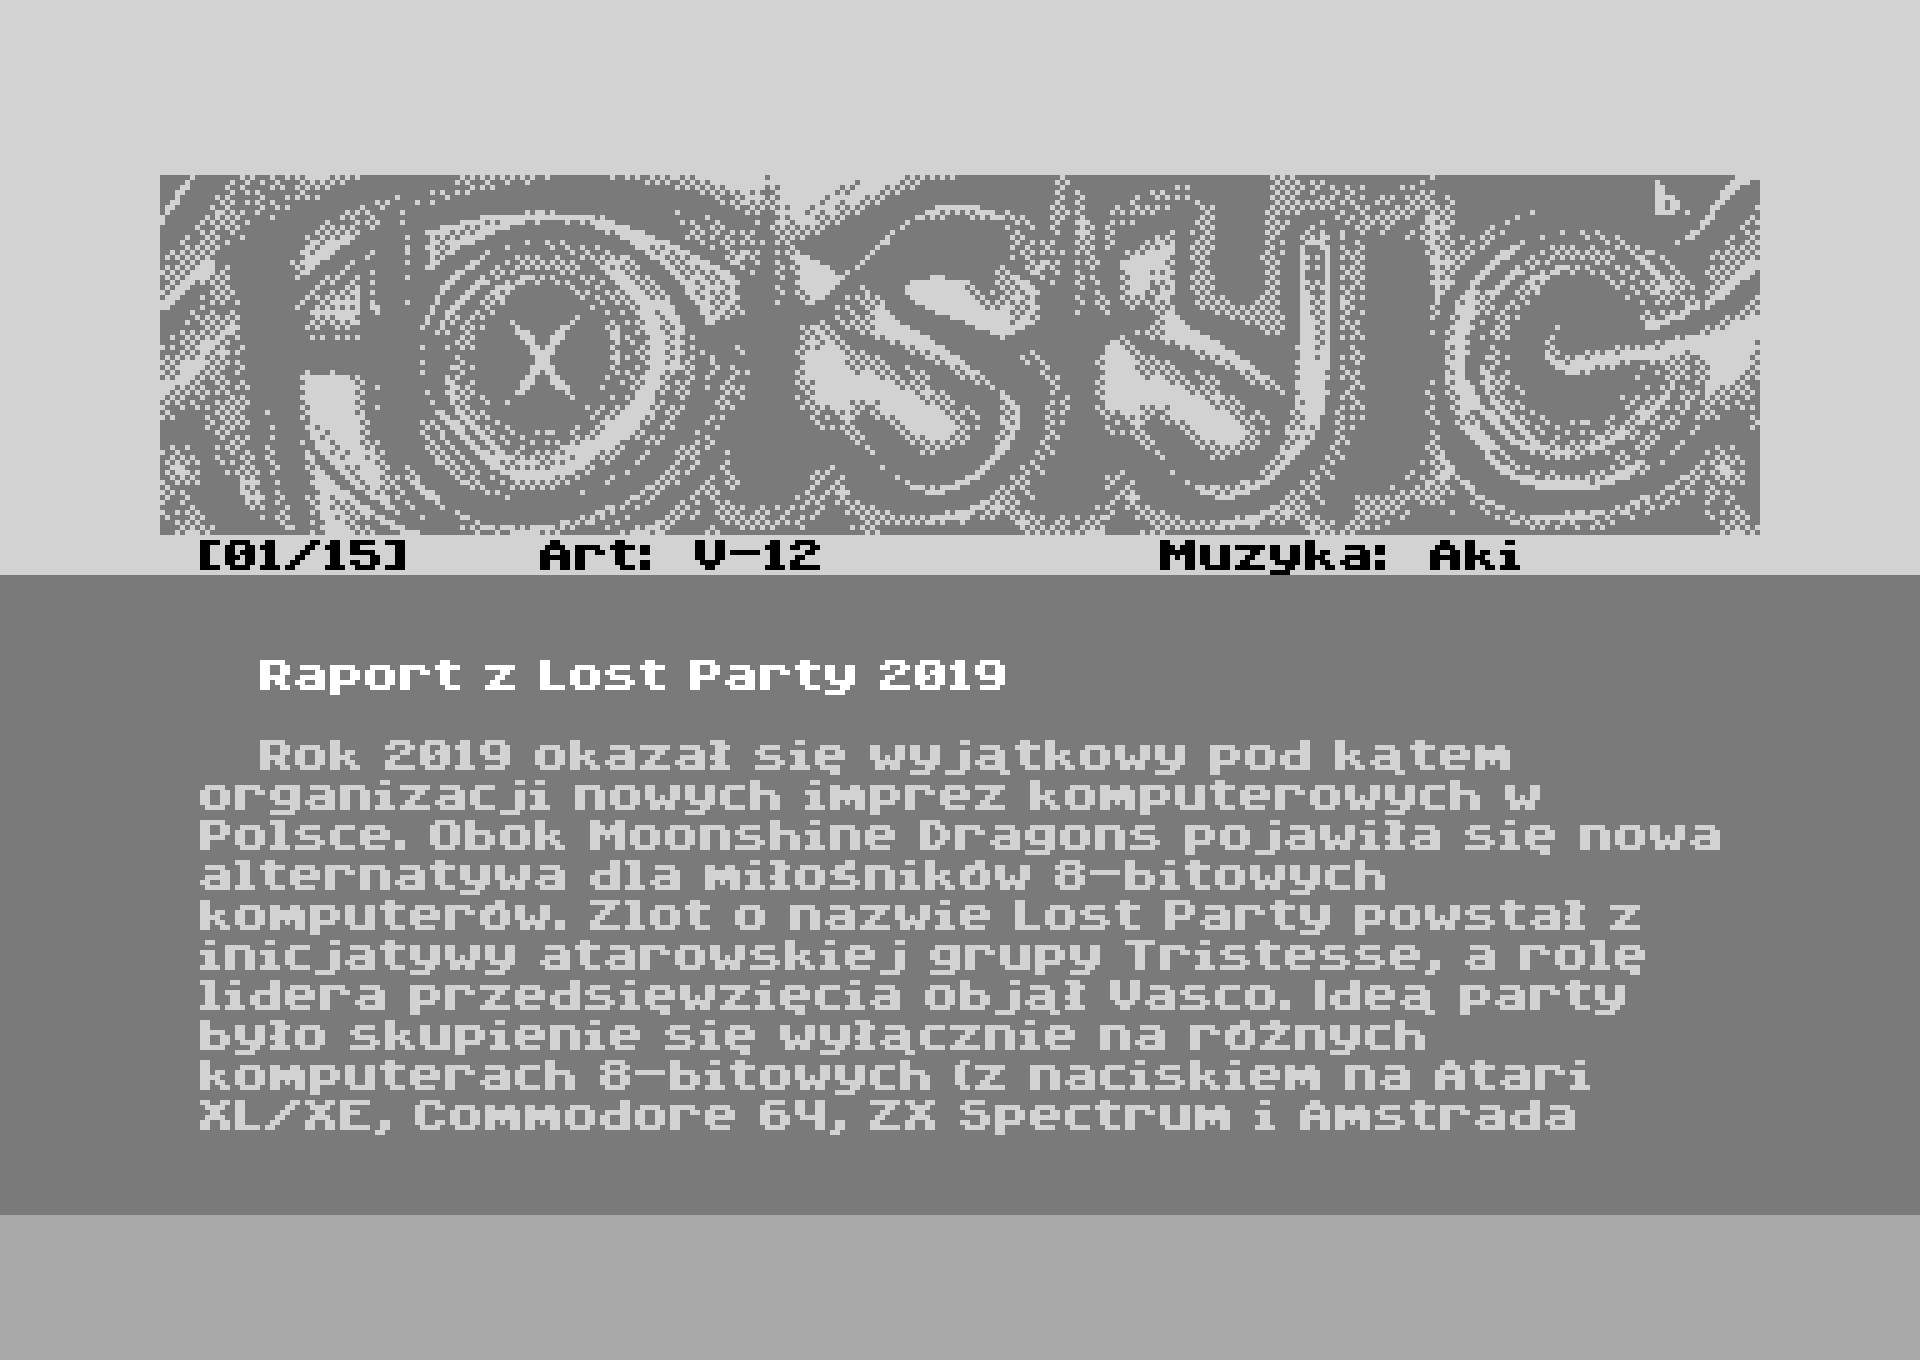 https://www.lostparty.pl/2021/gfx/varia/Hot-Style-10-2.png